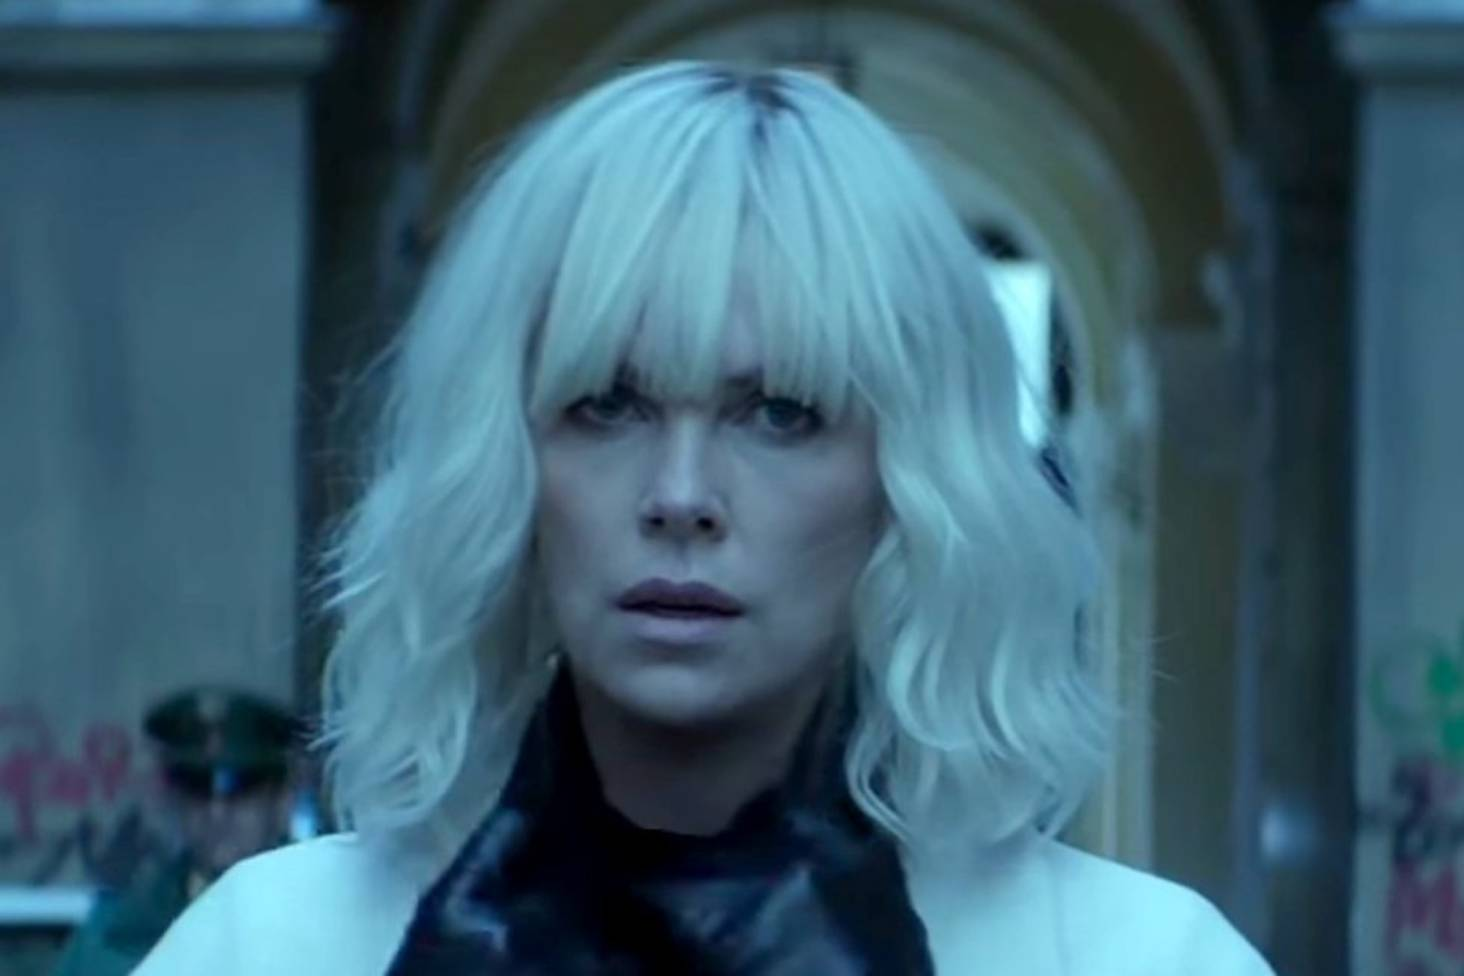 Atomic Blonde's Charlize Theron plays a leather-clad sexual tigress who  pulls no punches | Stuff.co.nz